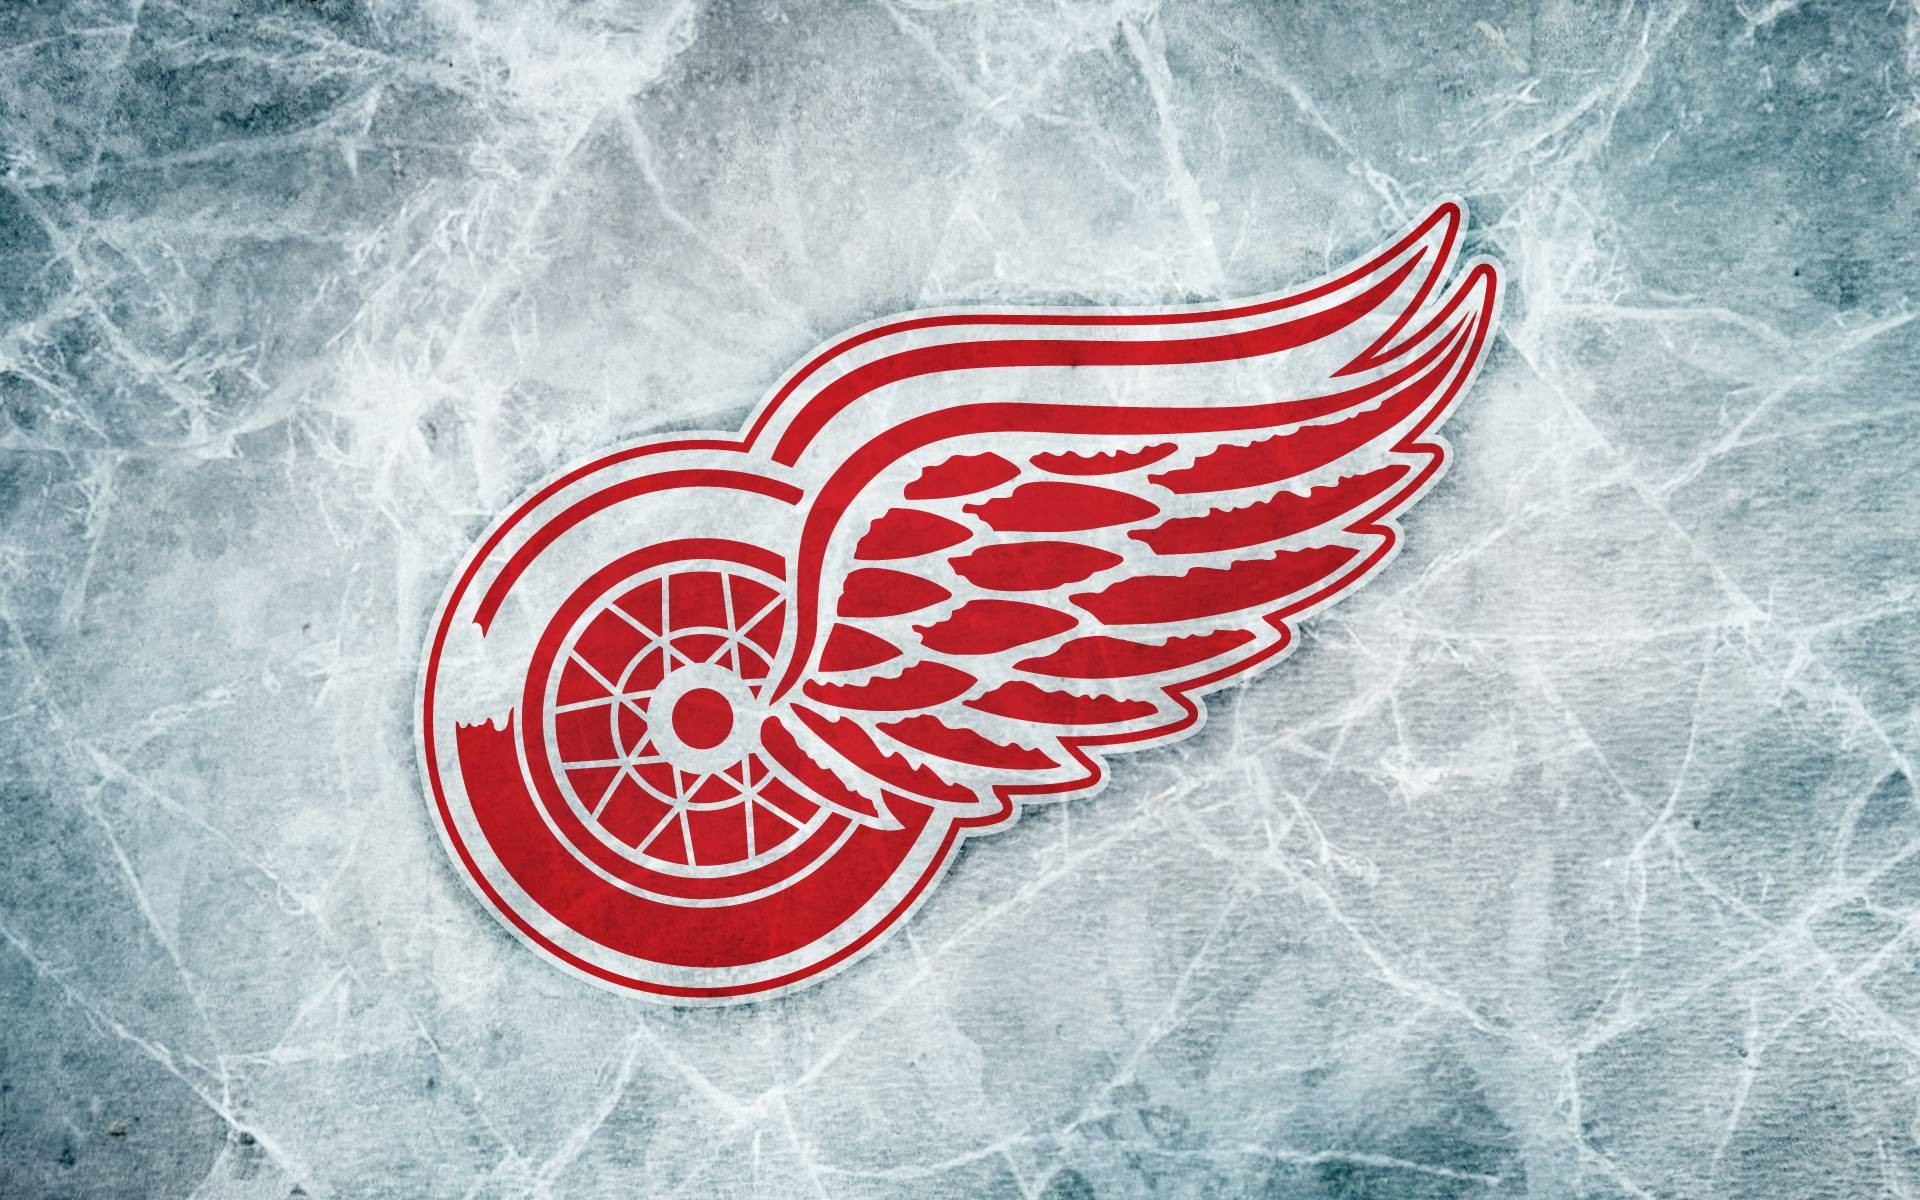 1920x1200 Detroit Red Wings wallpapers | Detroit Red Wings background - Page 4